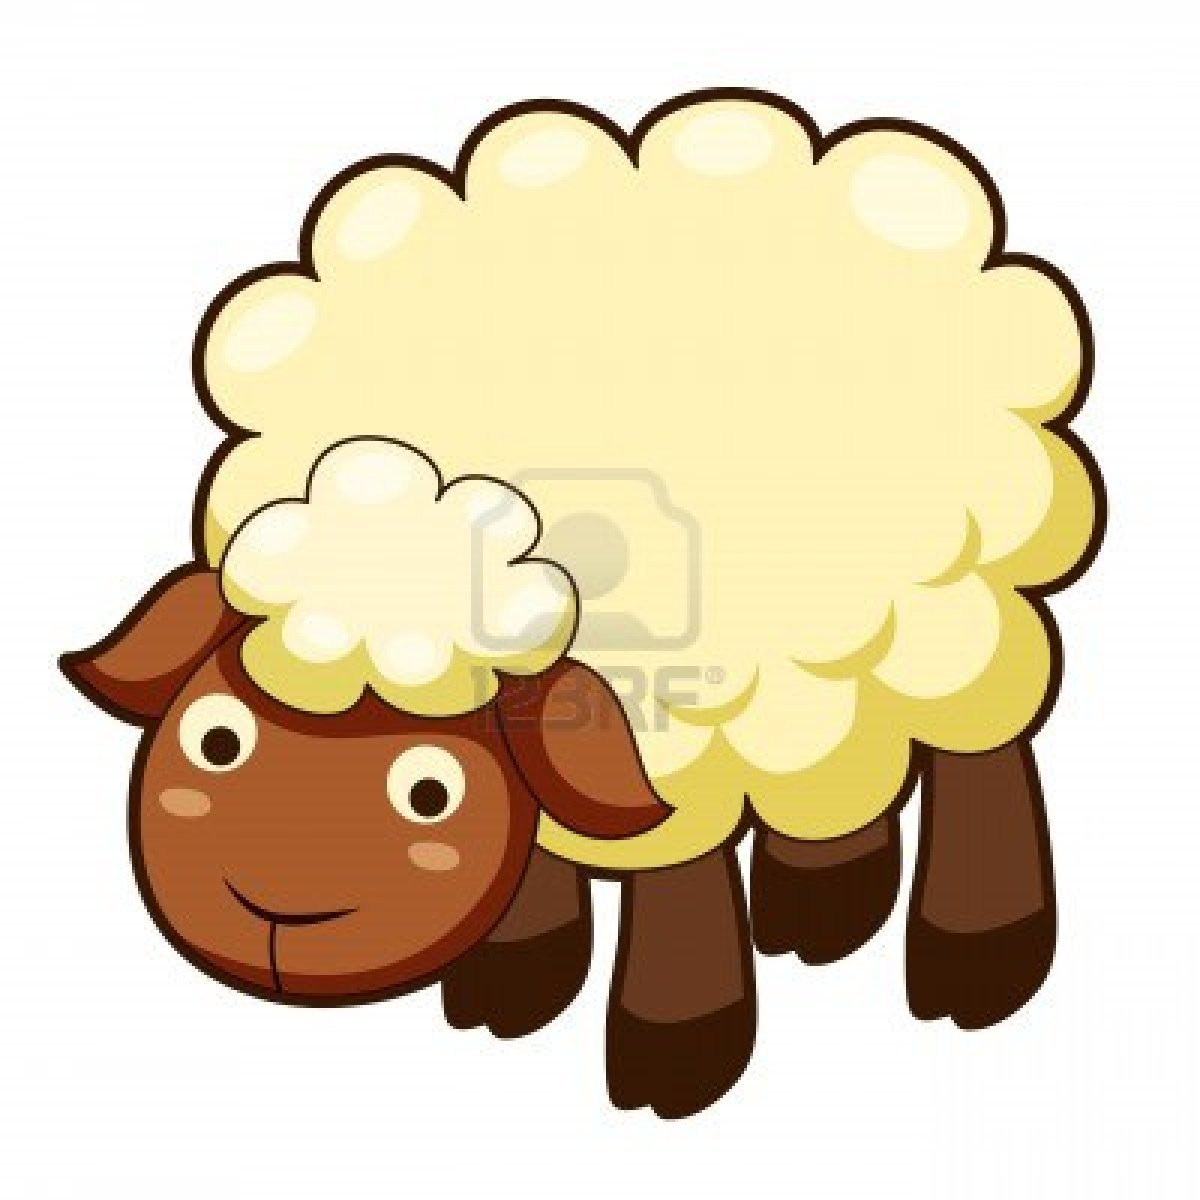 1200x1200 Cute Sheep Images Cute Sheep Clipart Black And White , Ipad Mini